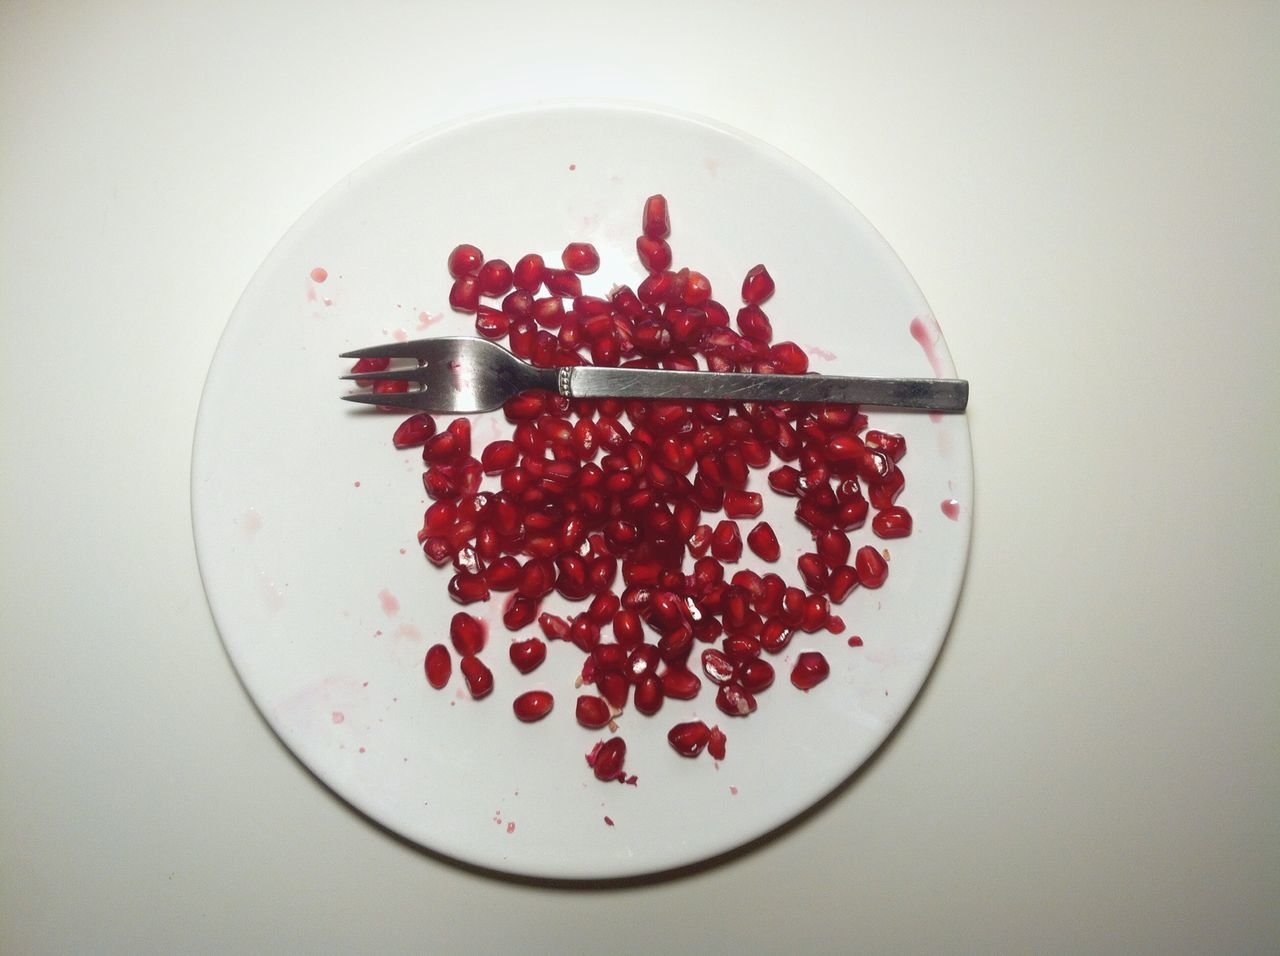 red, food and drink, studio shot, freshness, fruit, food, plate, sweet food, white background, no people, close-up, indoors, high angle view, indulgence, healthy eating, pomegranate seed, pomegranate, ready-to-eat, day